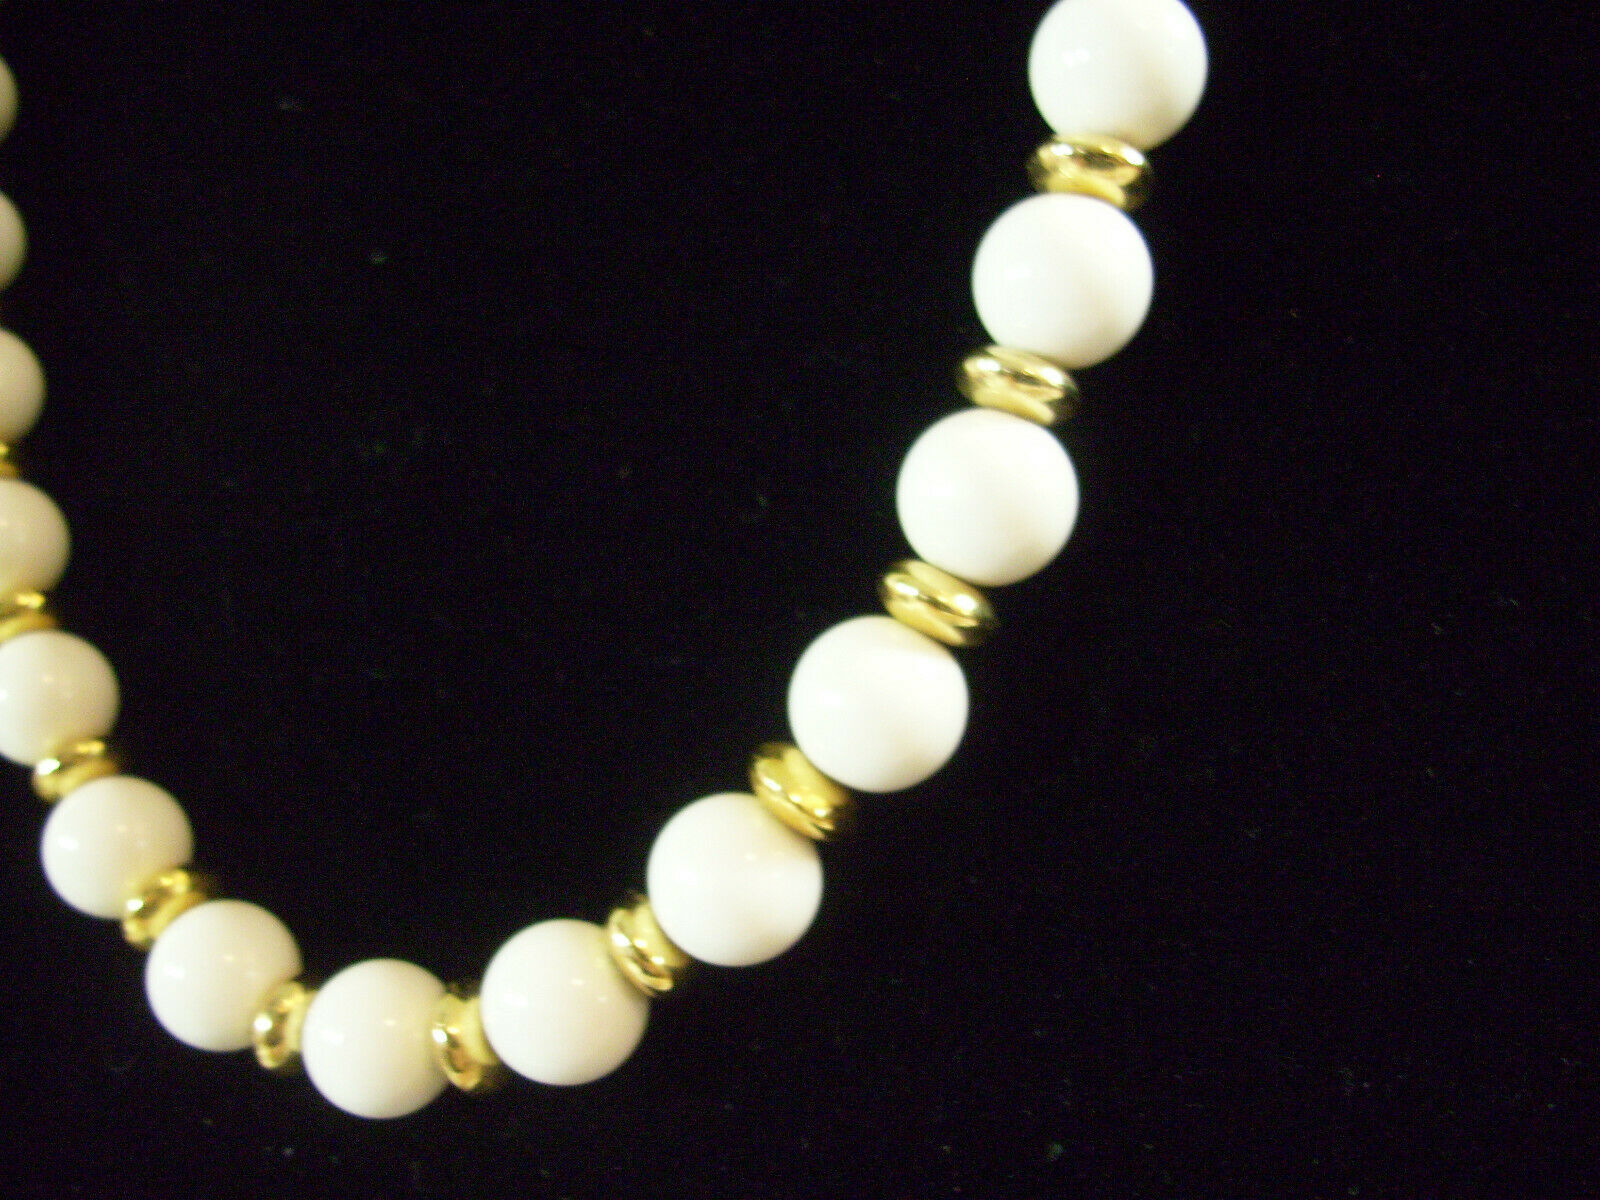 Trifari White Beads Gold Plate Spacers Necklace Strand String Elegant Classic image 4